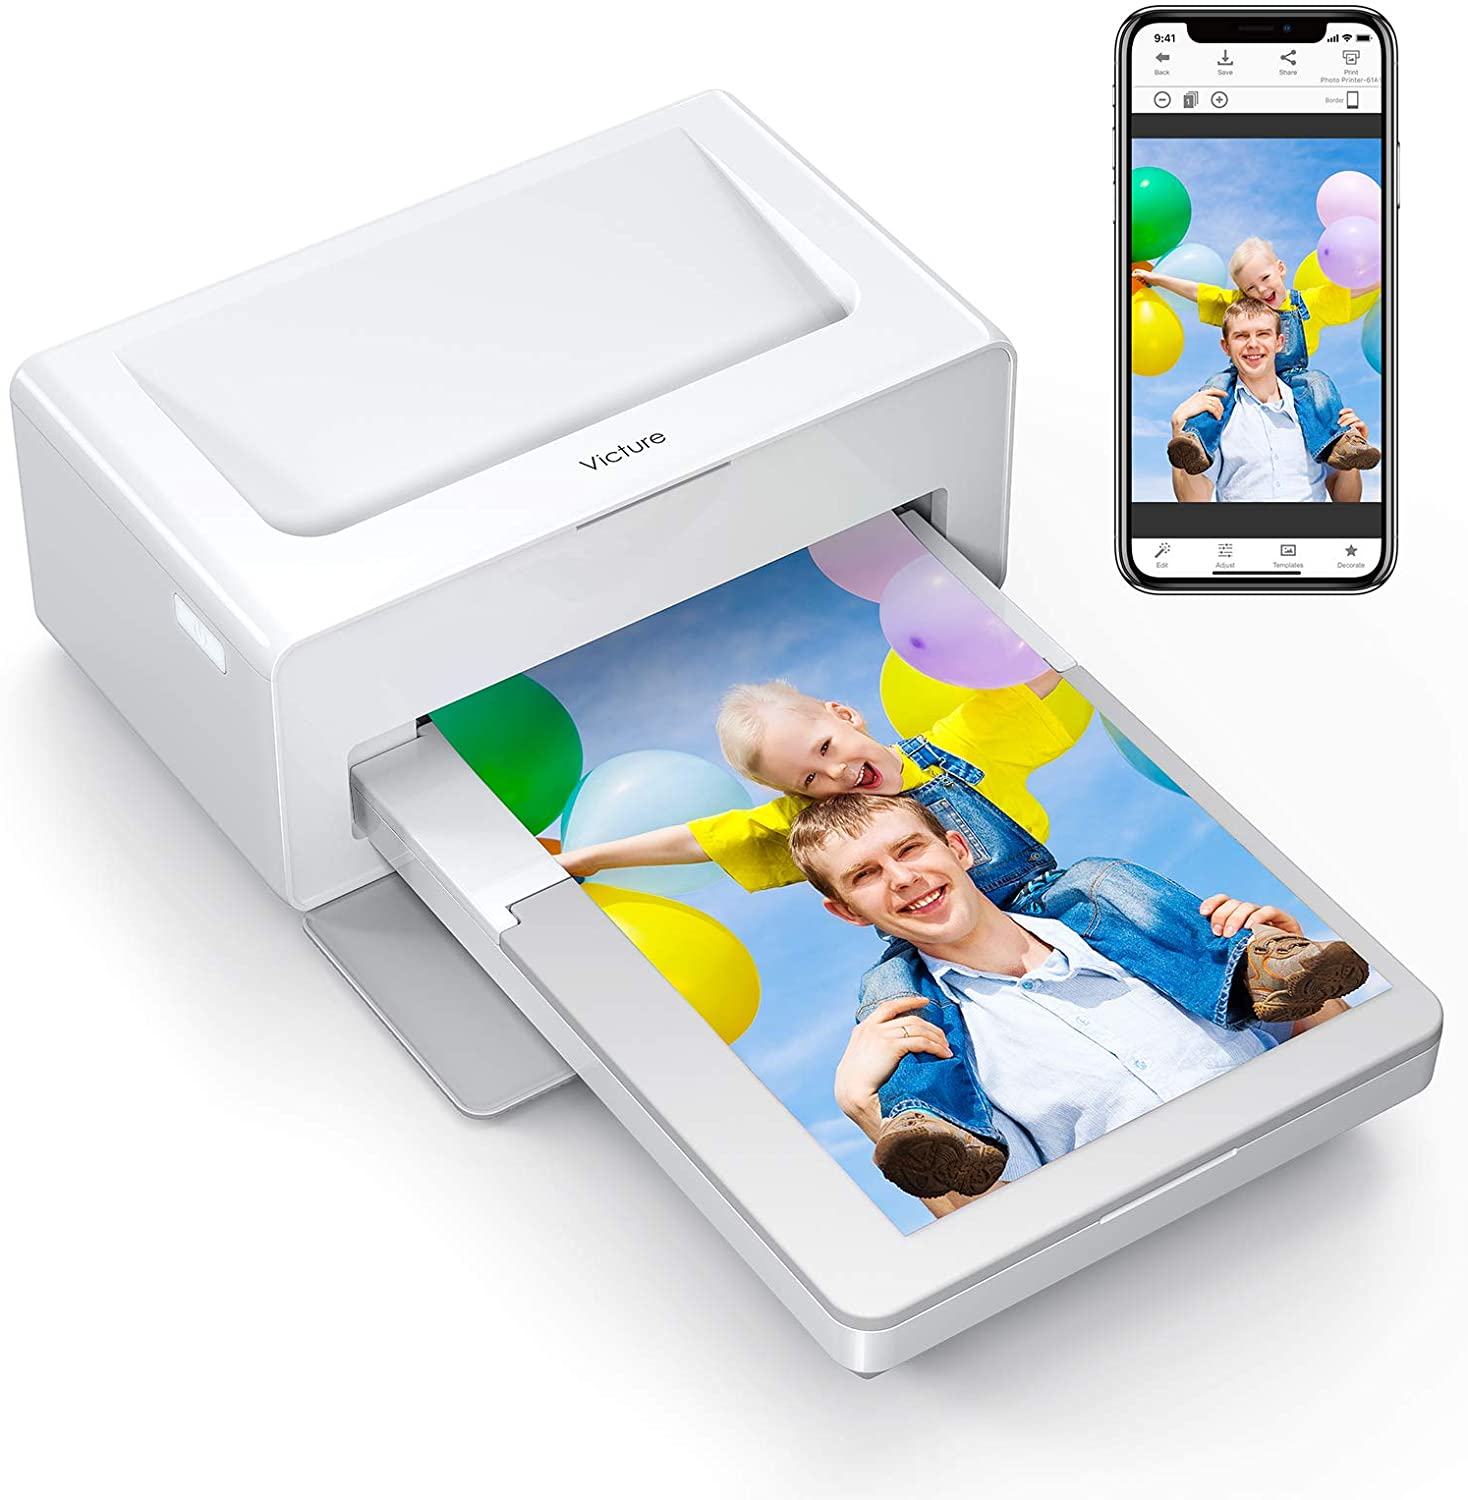 Victure Photo Printer, Instant Photo Printer Compatible with iOS & Android Devices uk reviews